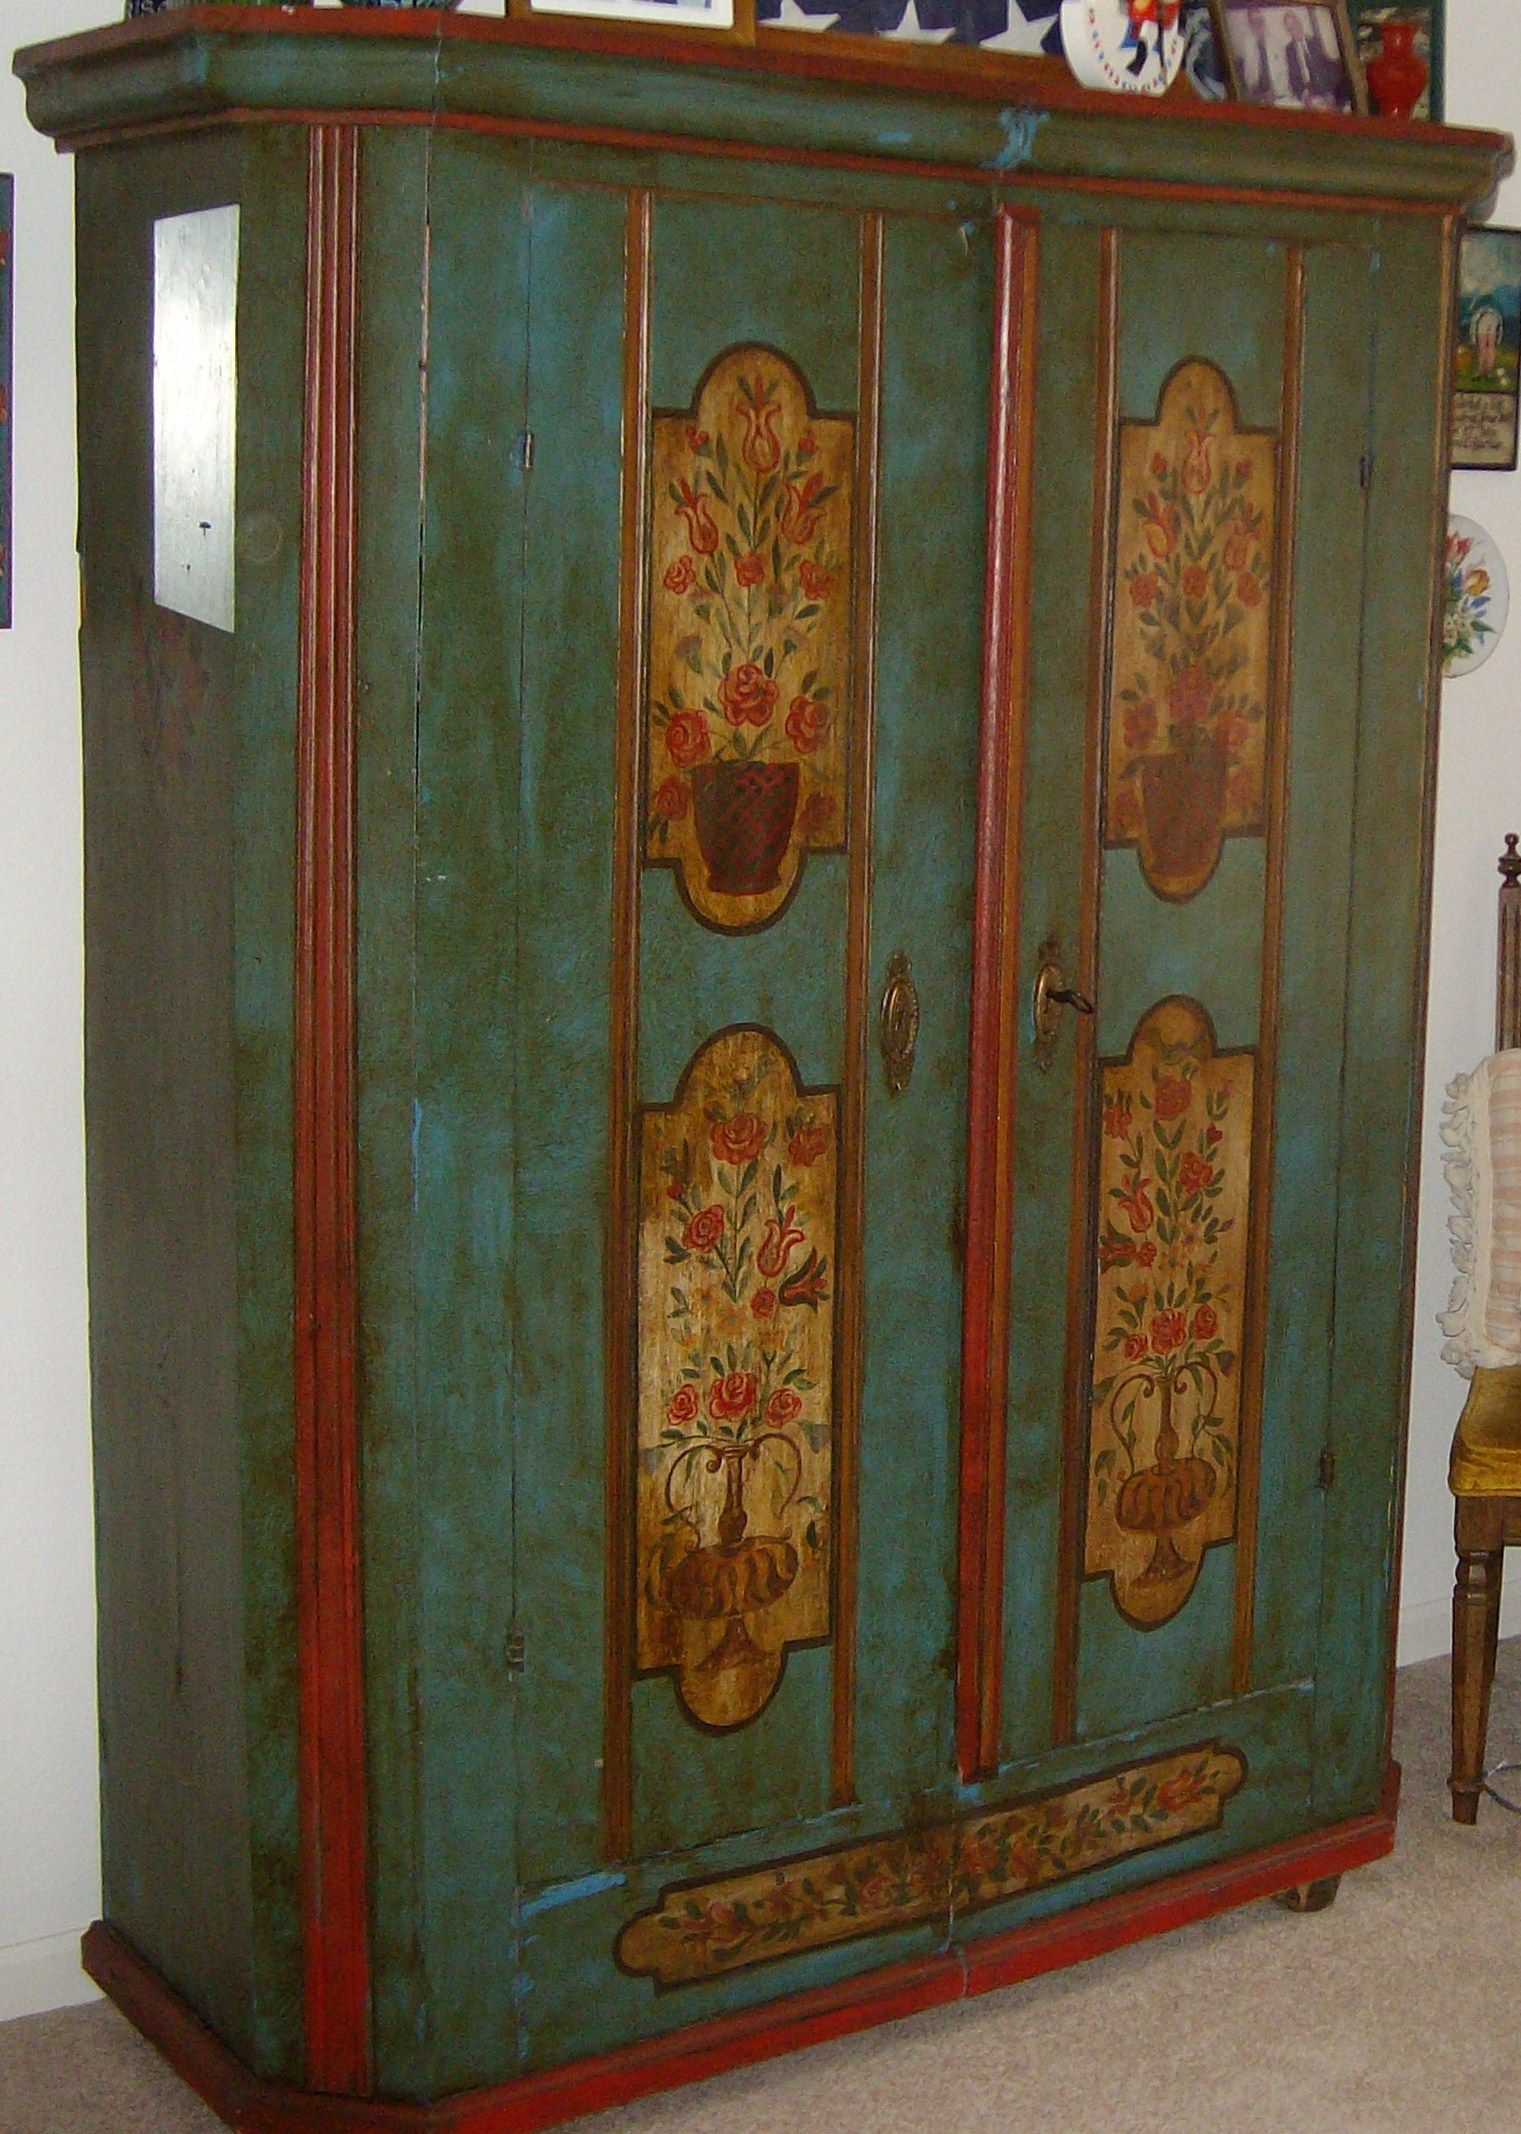 Bavarian Schrank Painting Antique Furniture Vintage Painted Furniture Furniture Restoration